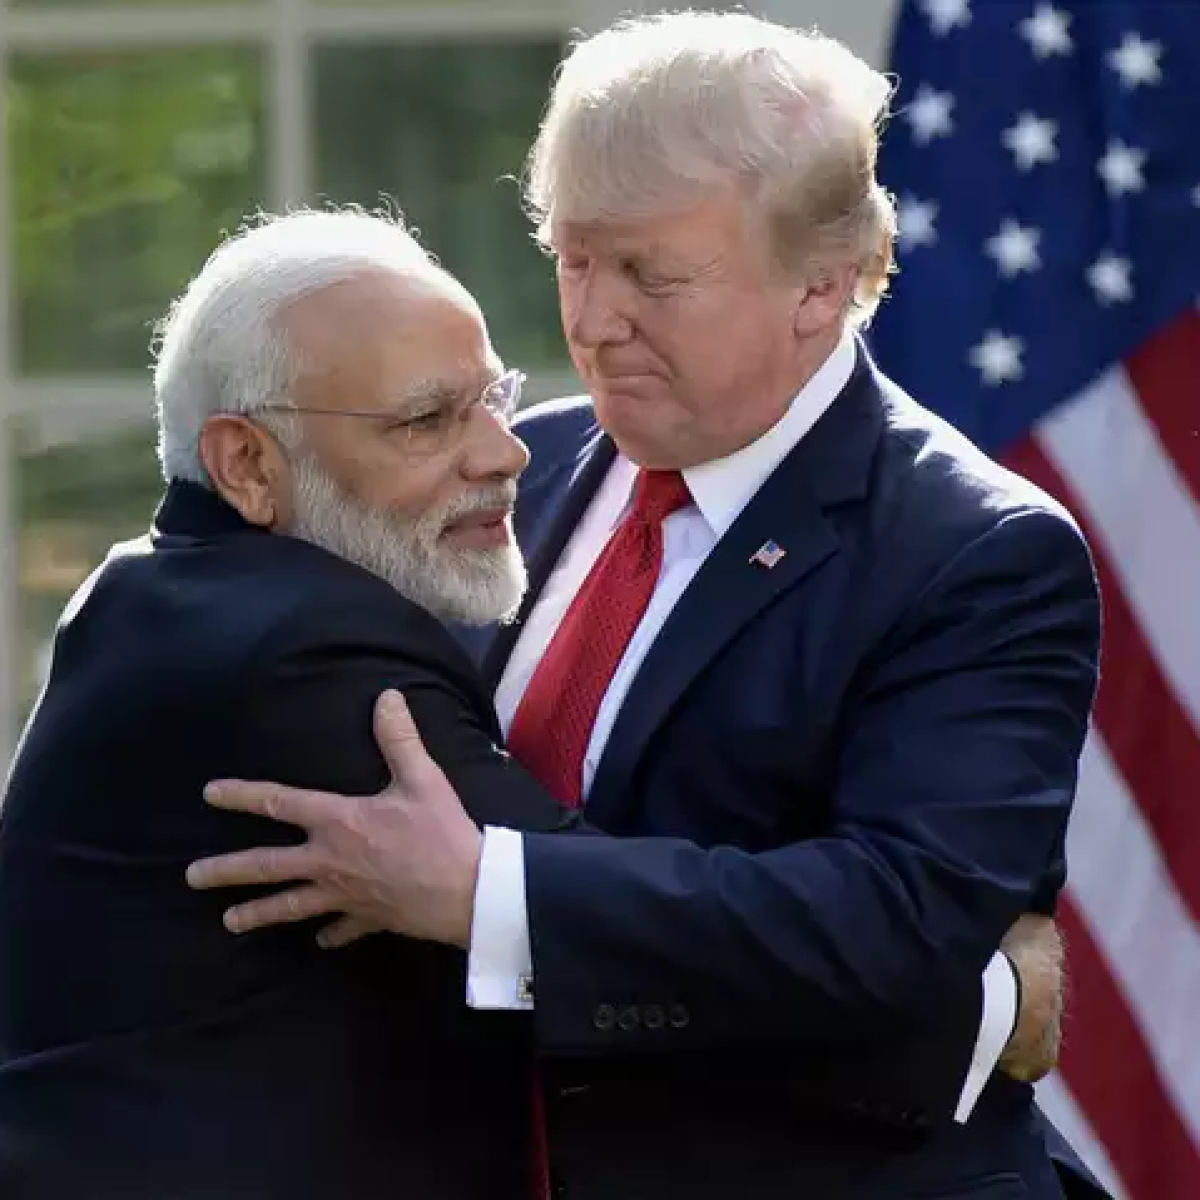 Trump will raise issue of religious  freedom with Modi: White House